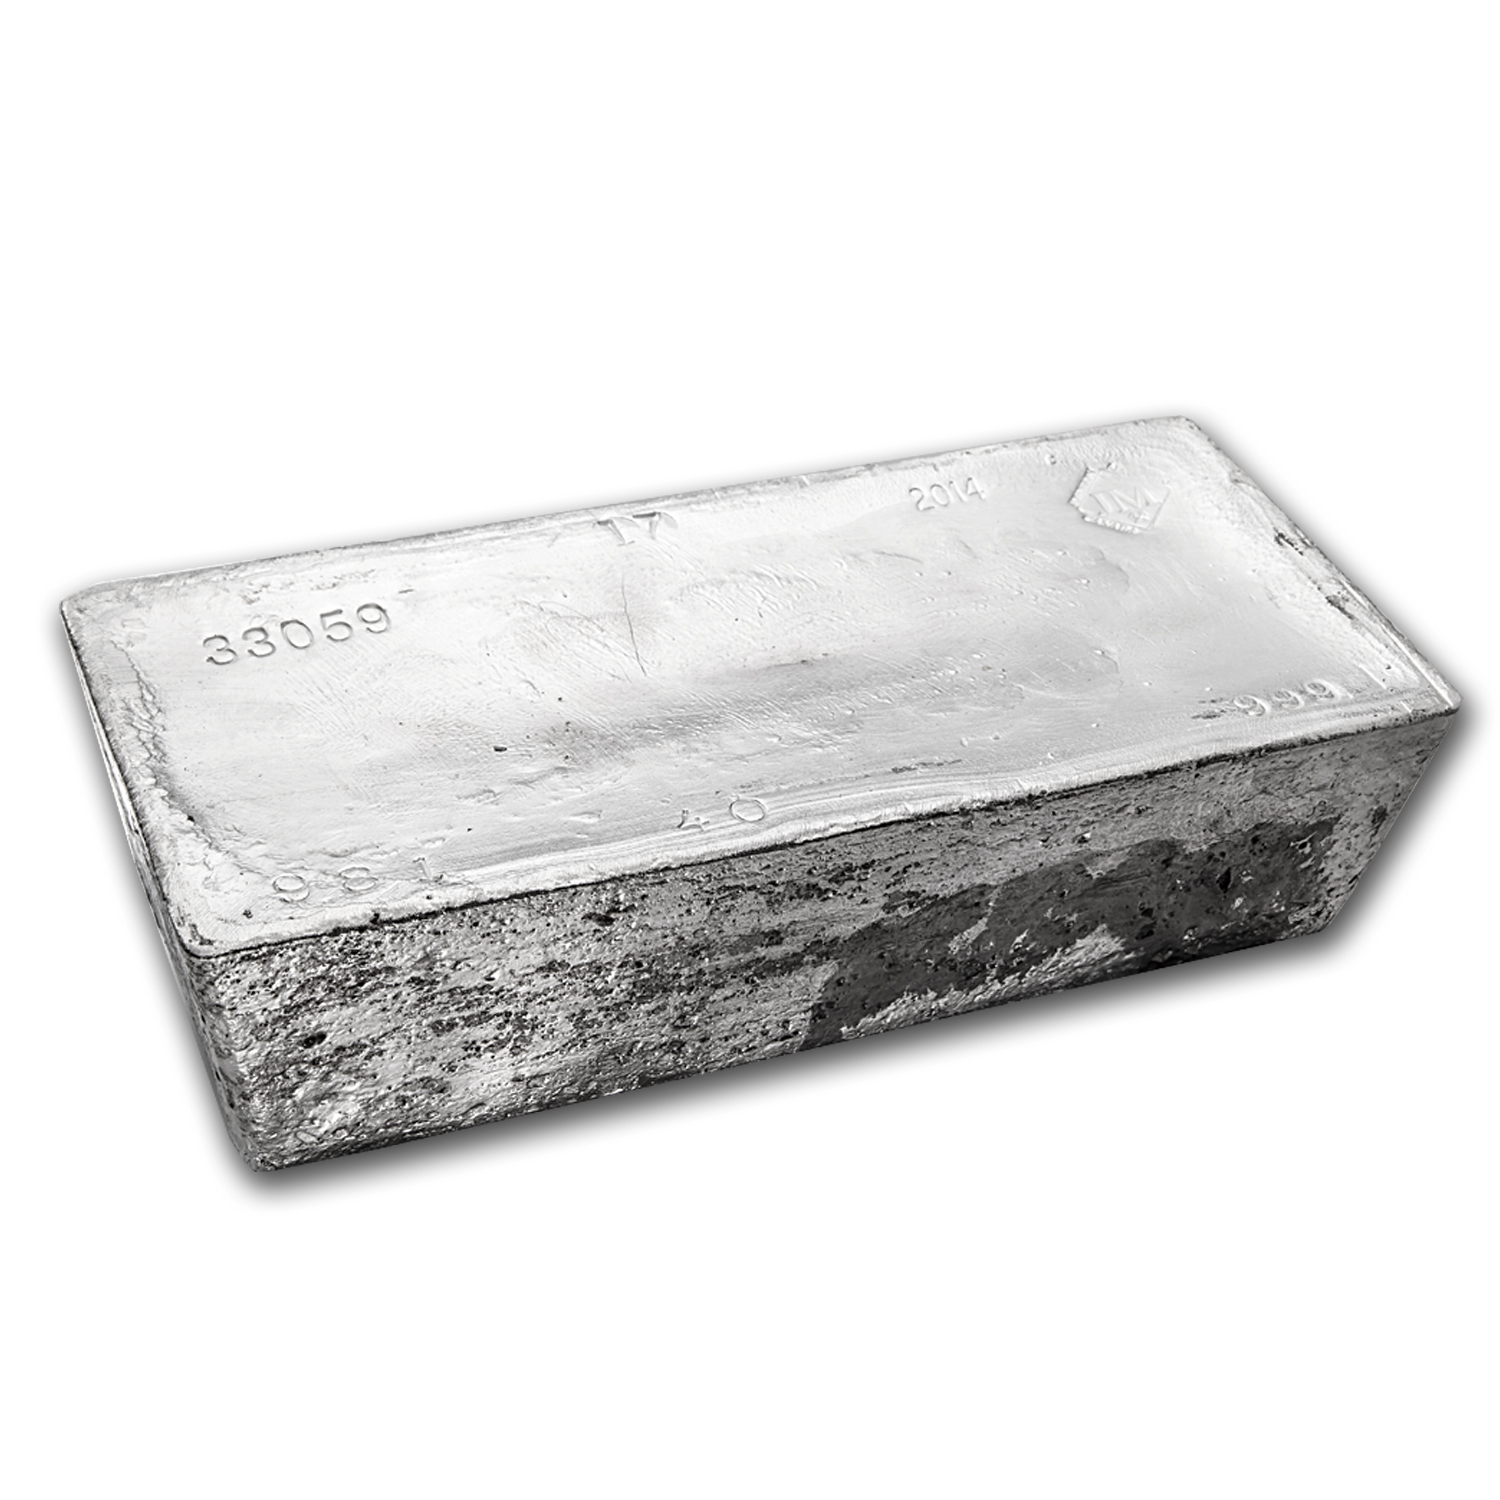 987.20 oz Silver Bars - Johnson Matthey